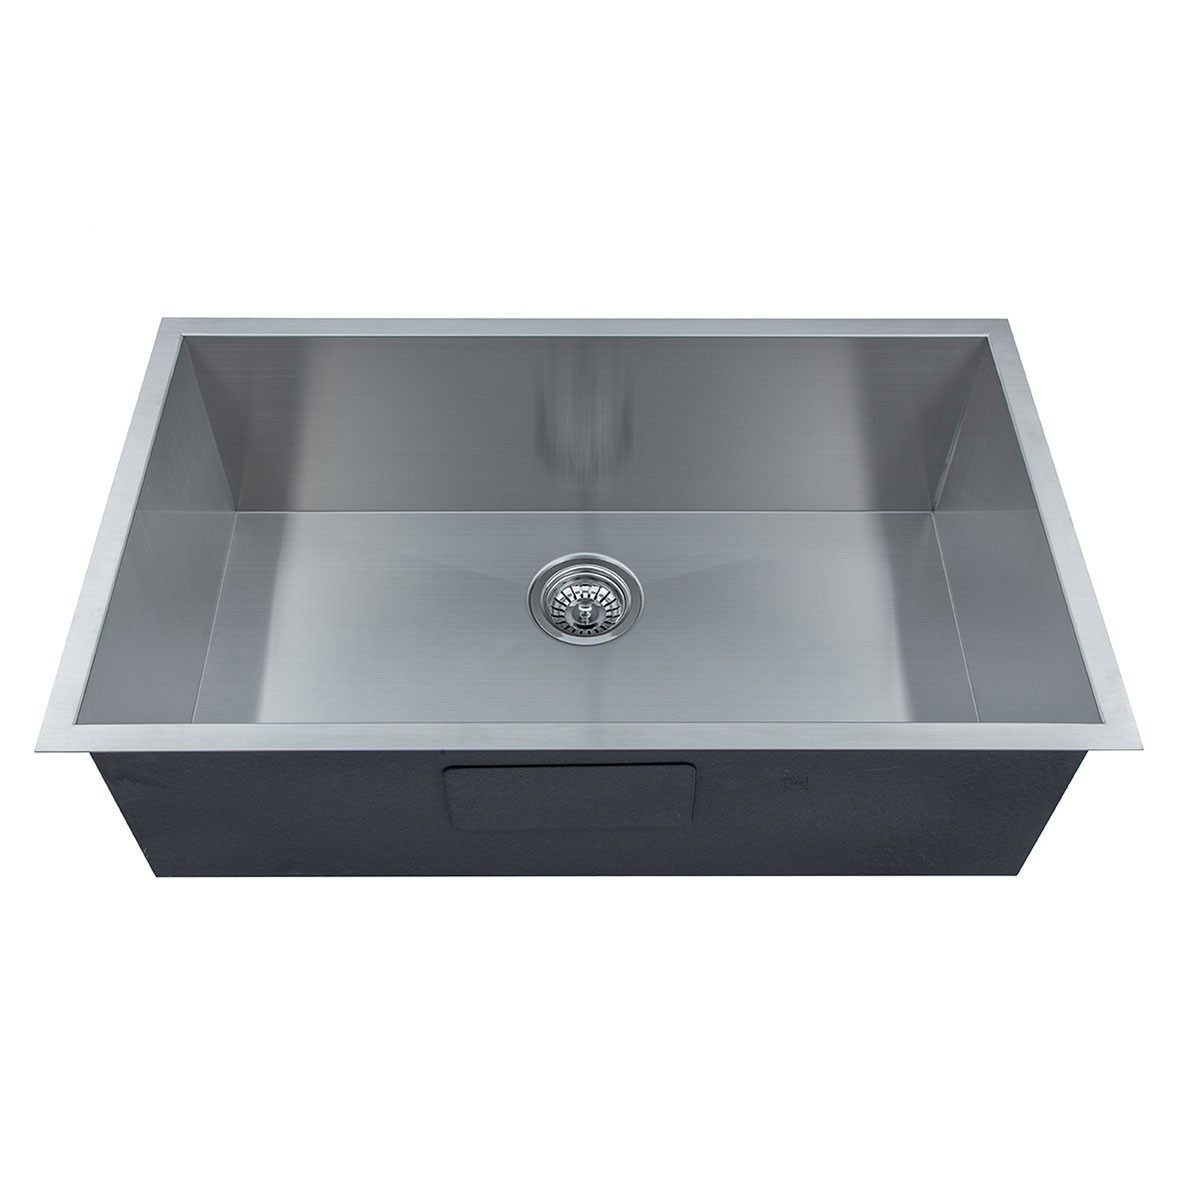 32 x 19 In. Stainless Steel Single Bowl Handmade Kitchen Sink ...